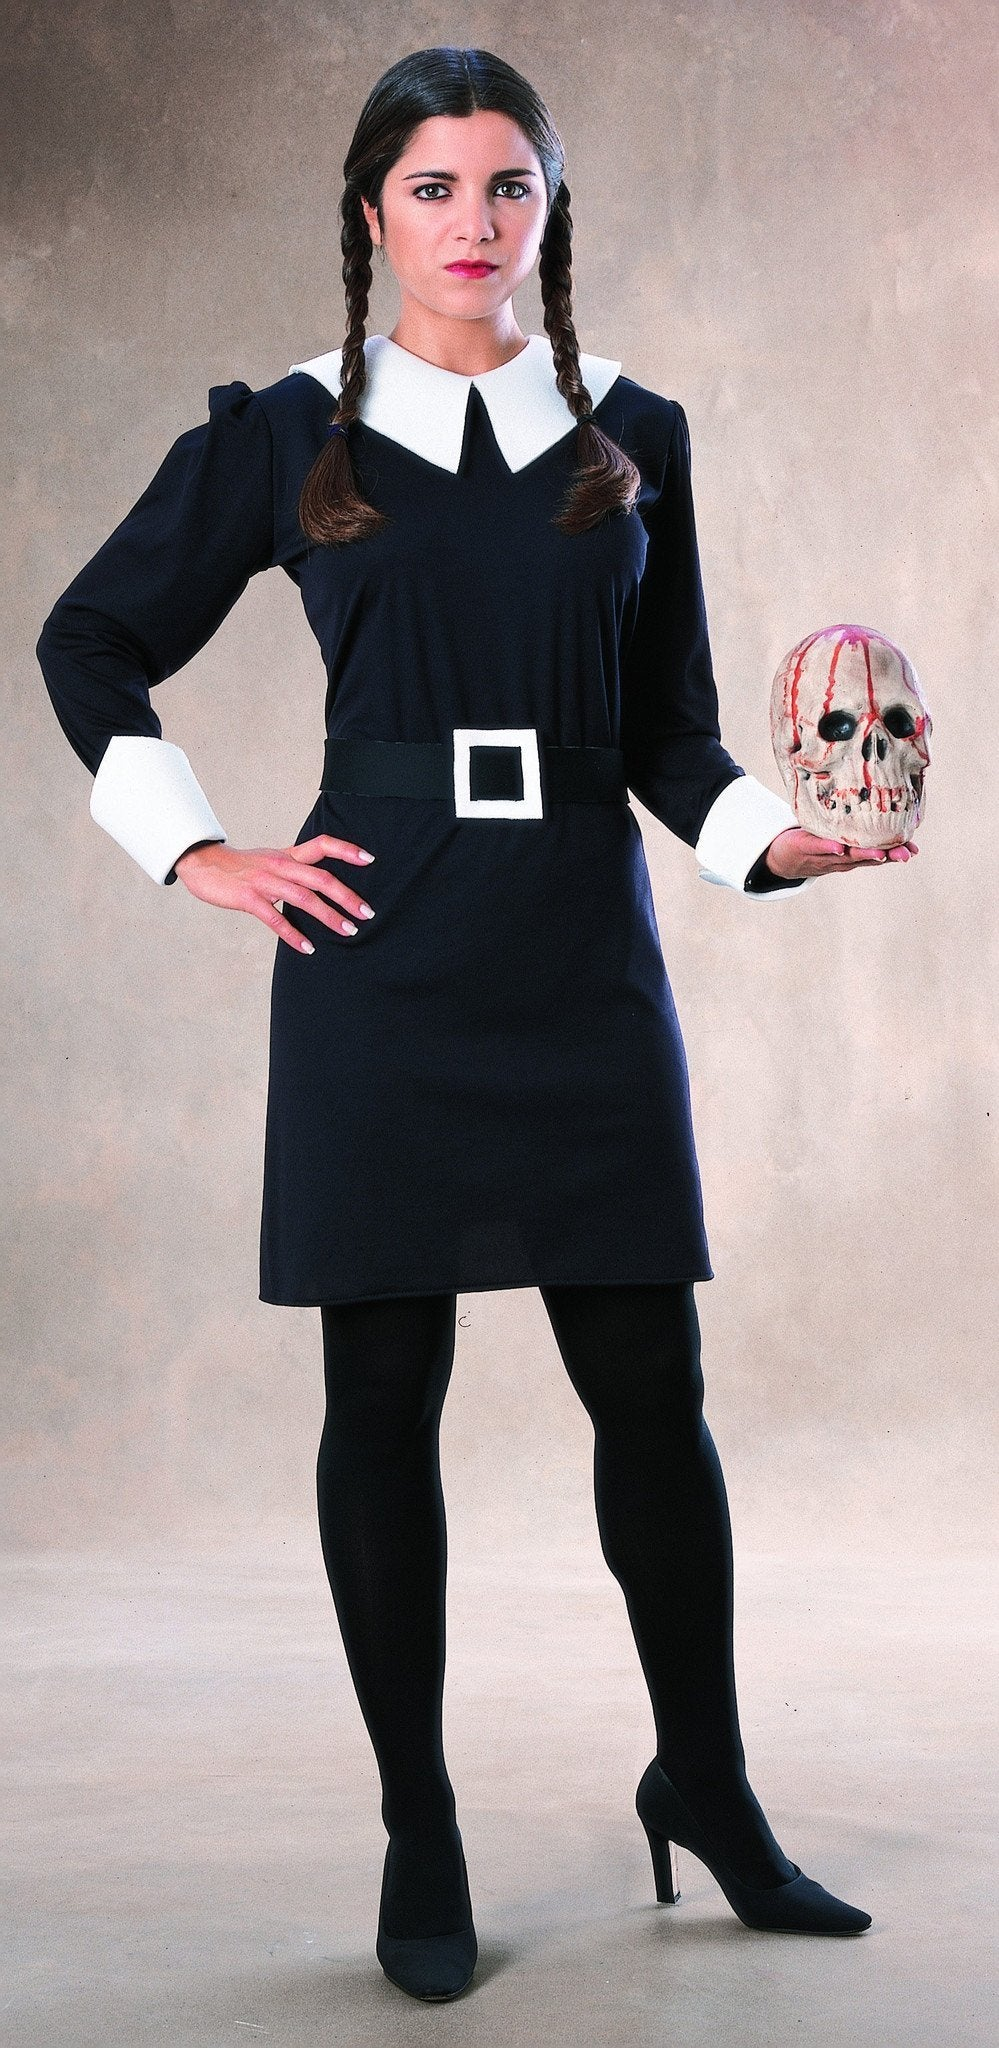 wednesday addams adult halloween costume for sale